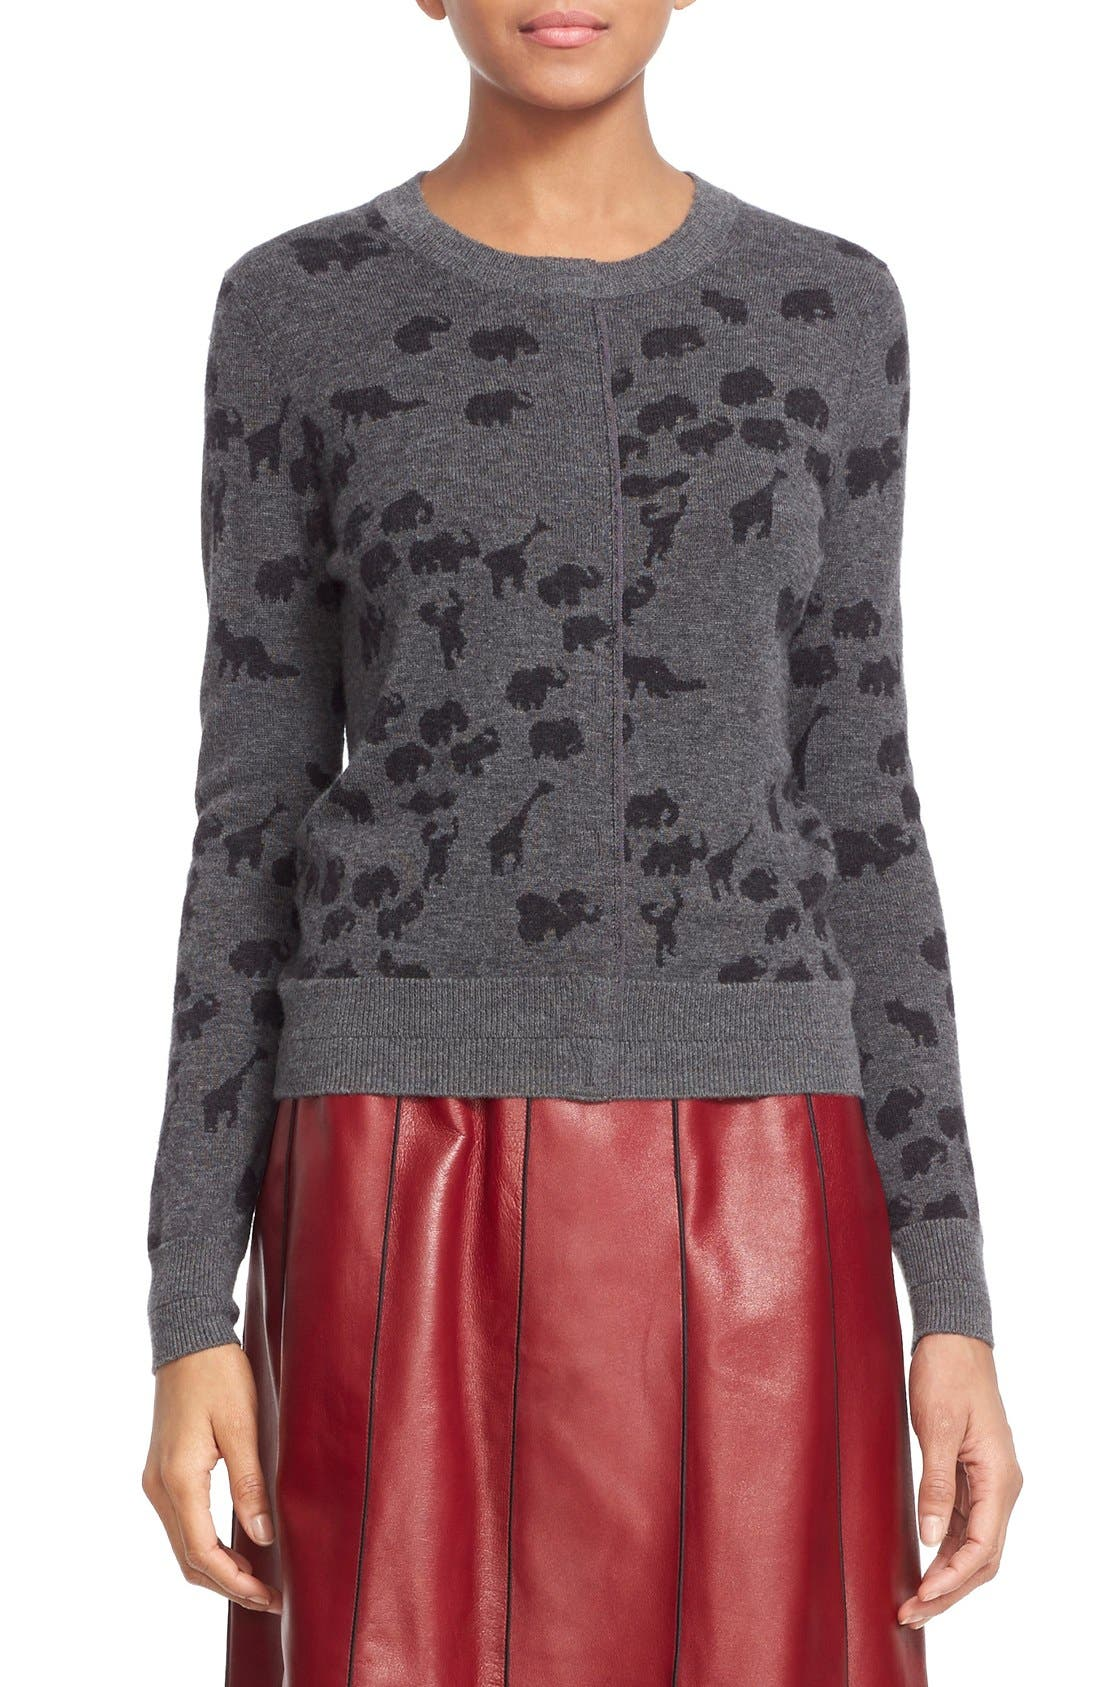 Main Image - MARC JACOBS Animal Jacquard Cashmere Sweater